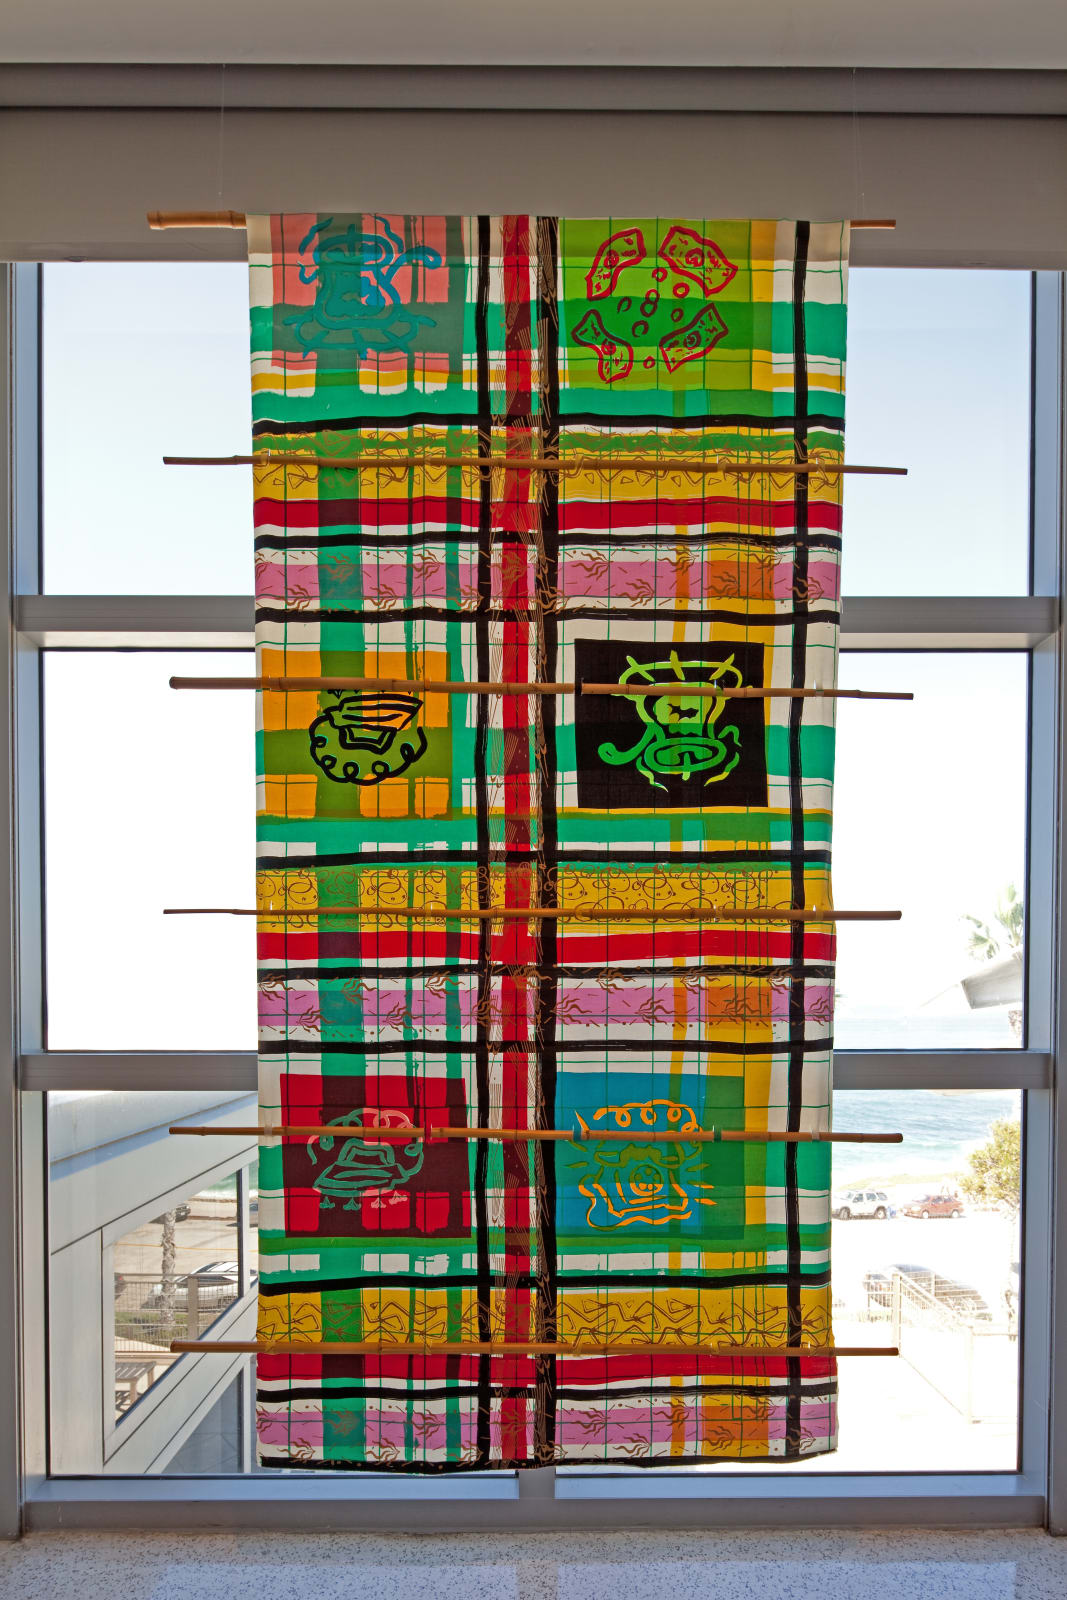 From the retrospective, Collection Applied Design, at the Museum of Contemporary Art San Diego.